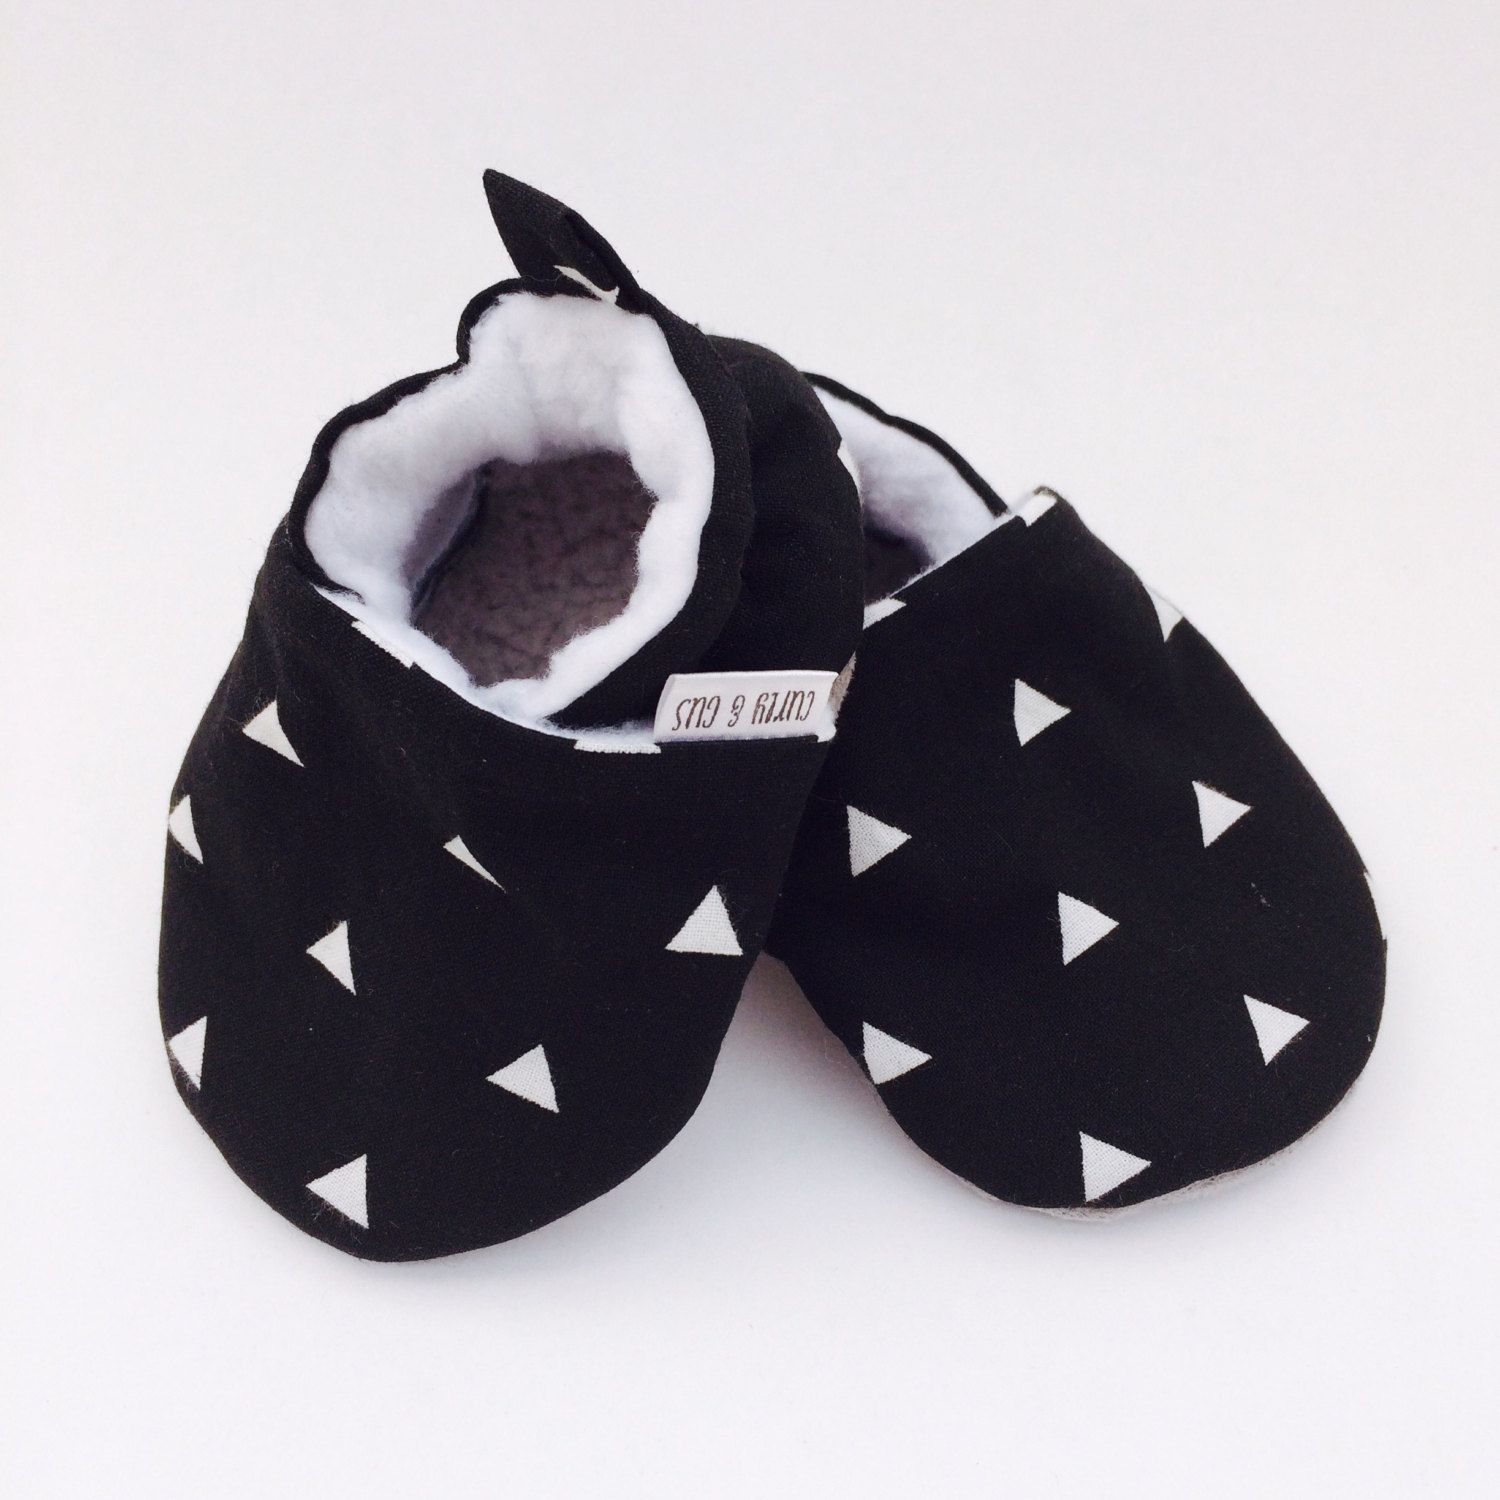 Baby Shoes Triangles Black and White Monochrome Baby Soft Sole